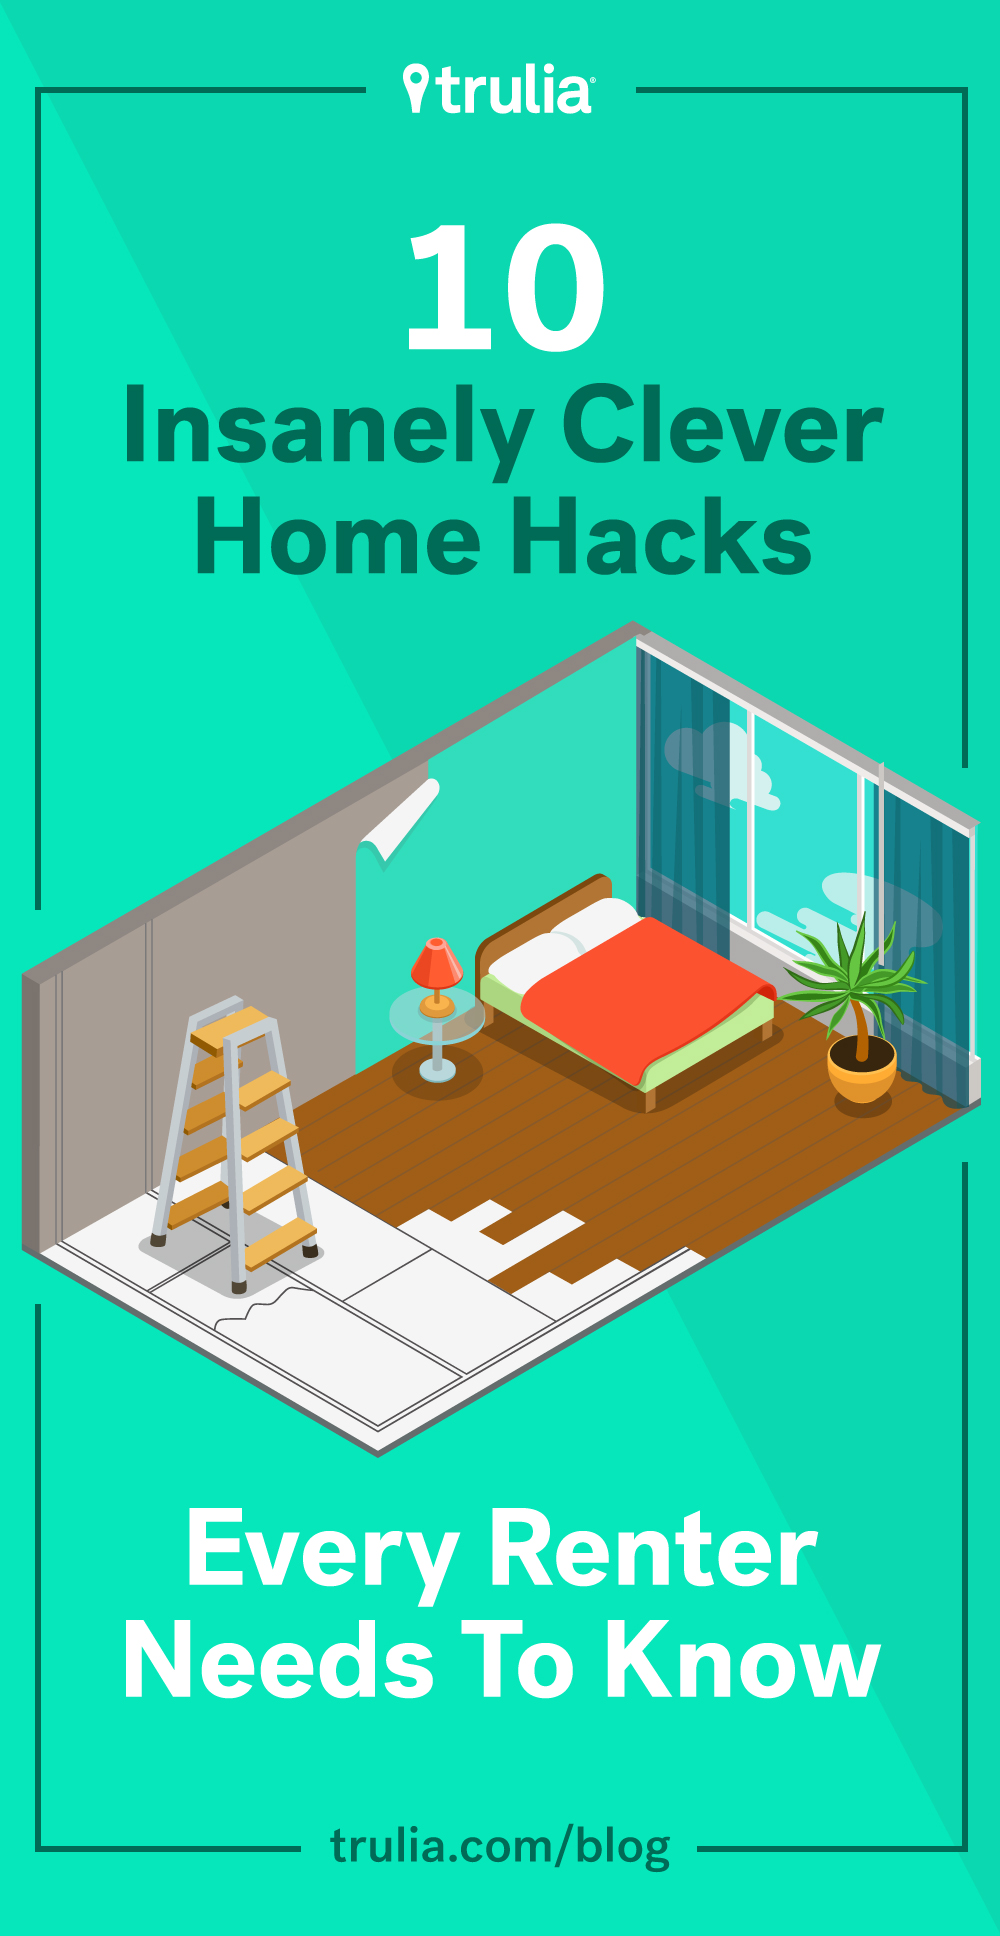 10 Clever Diy Hacks Every Renter Needs To Know Life At Home Trulia Blog